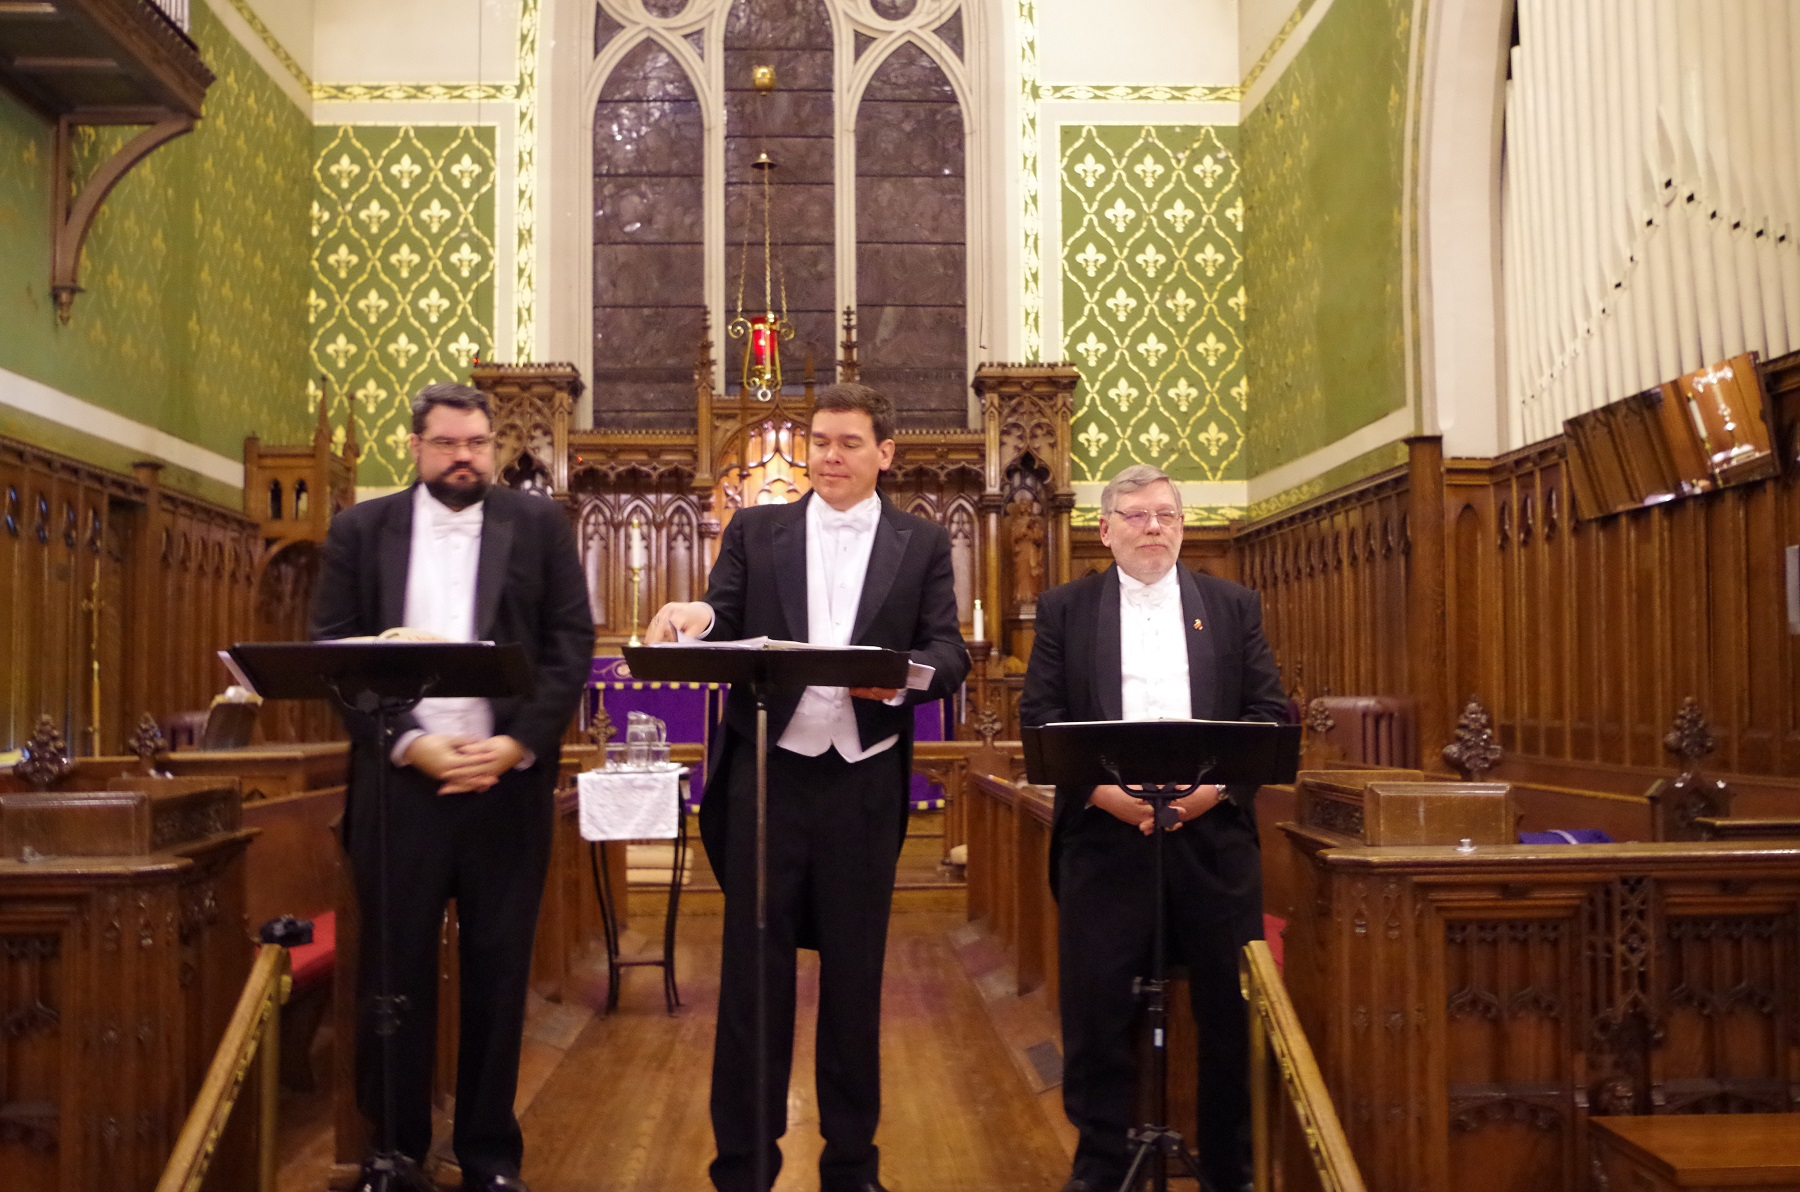 The Three Cantors: Bill Cliff, David Pickett and Peter Wall sang before a packed house in Brantford. Photo: Huron Church News